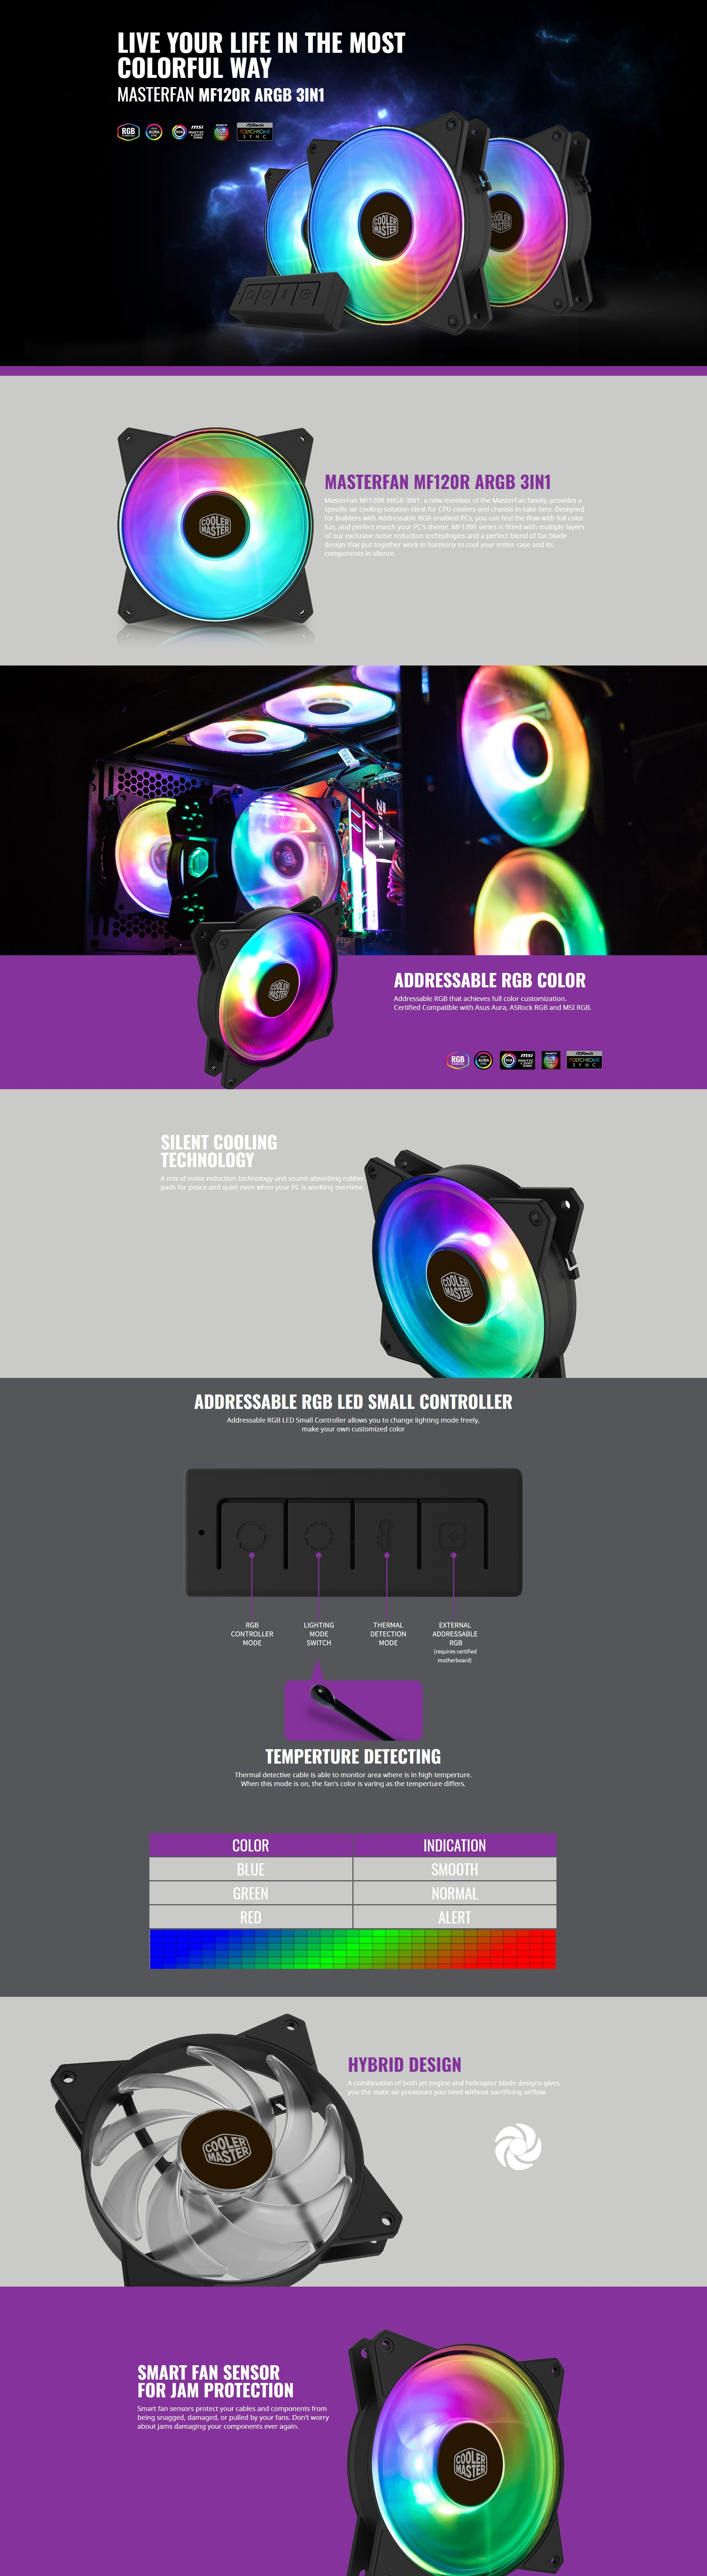 A large marketing image providing additional information about the product Cooler Master MasterFan MF120R 120mm ARGB 3-in-1 Kit - Additional alt info not provided